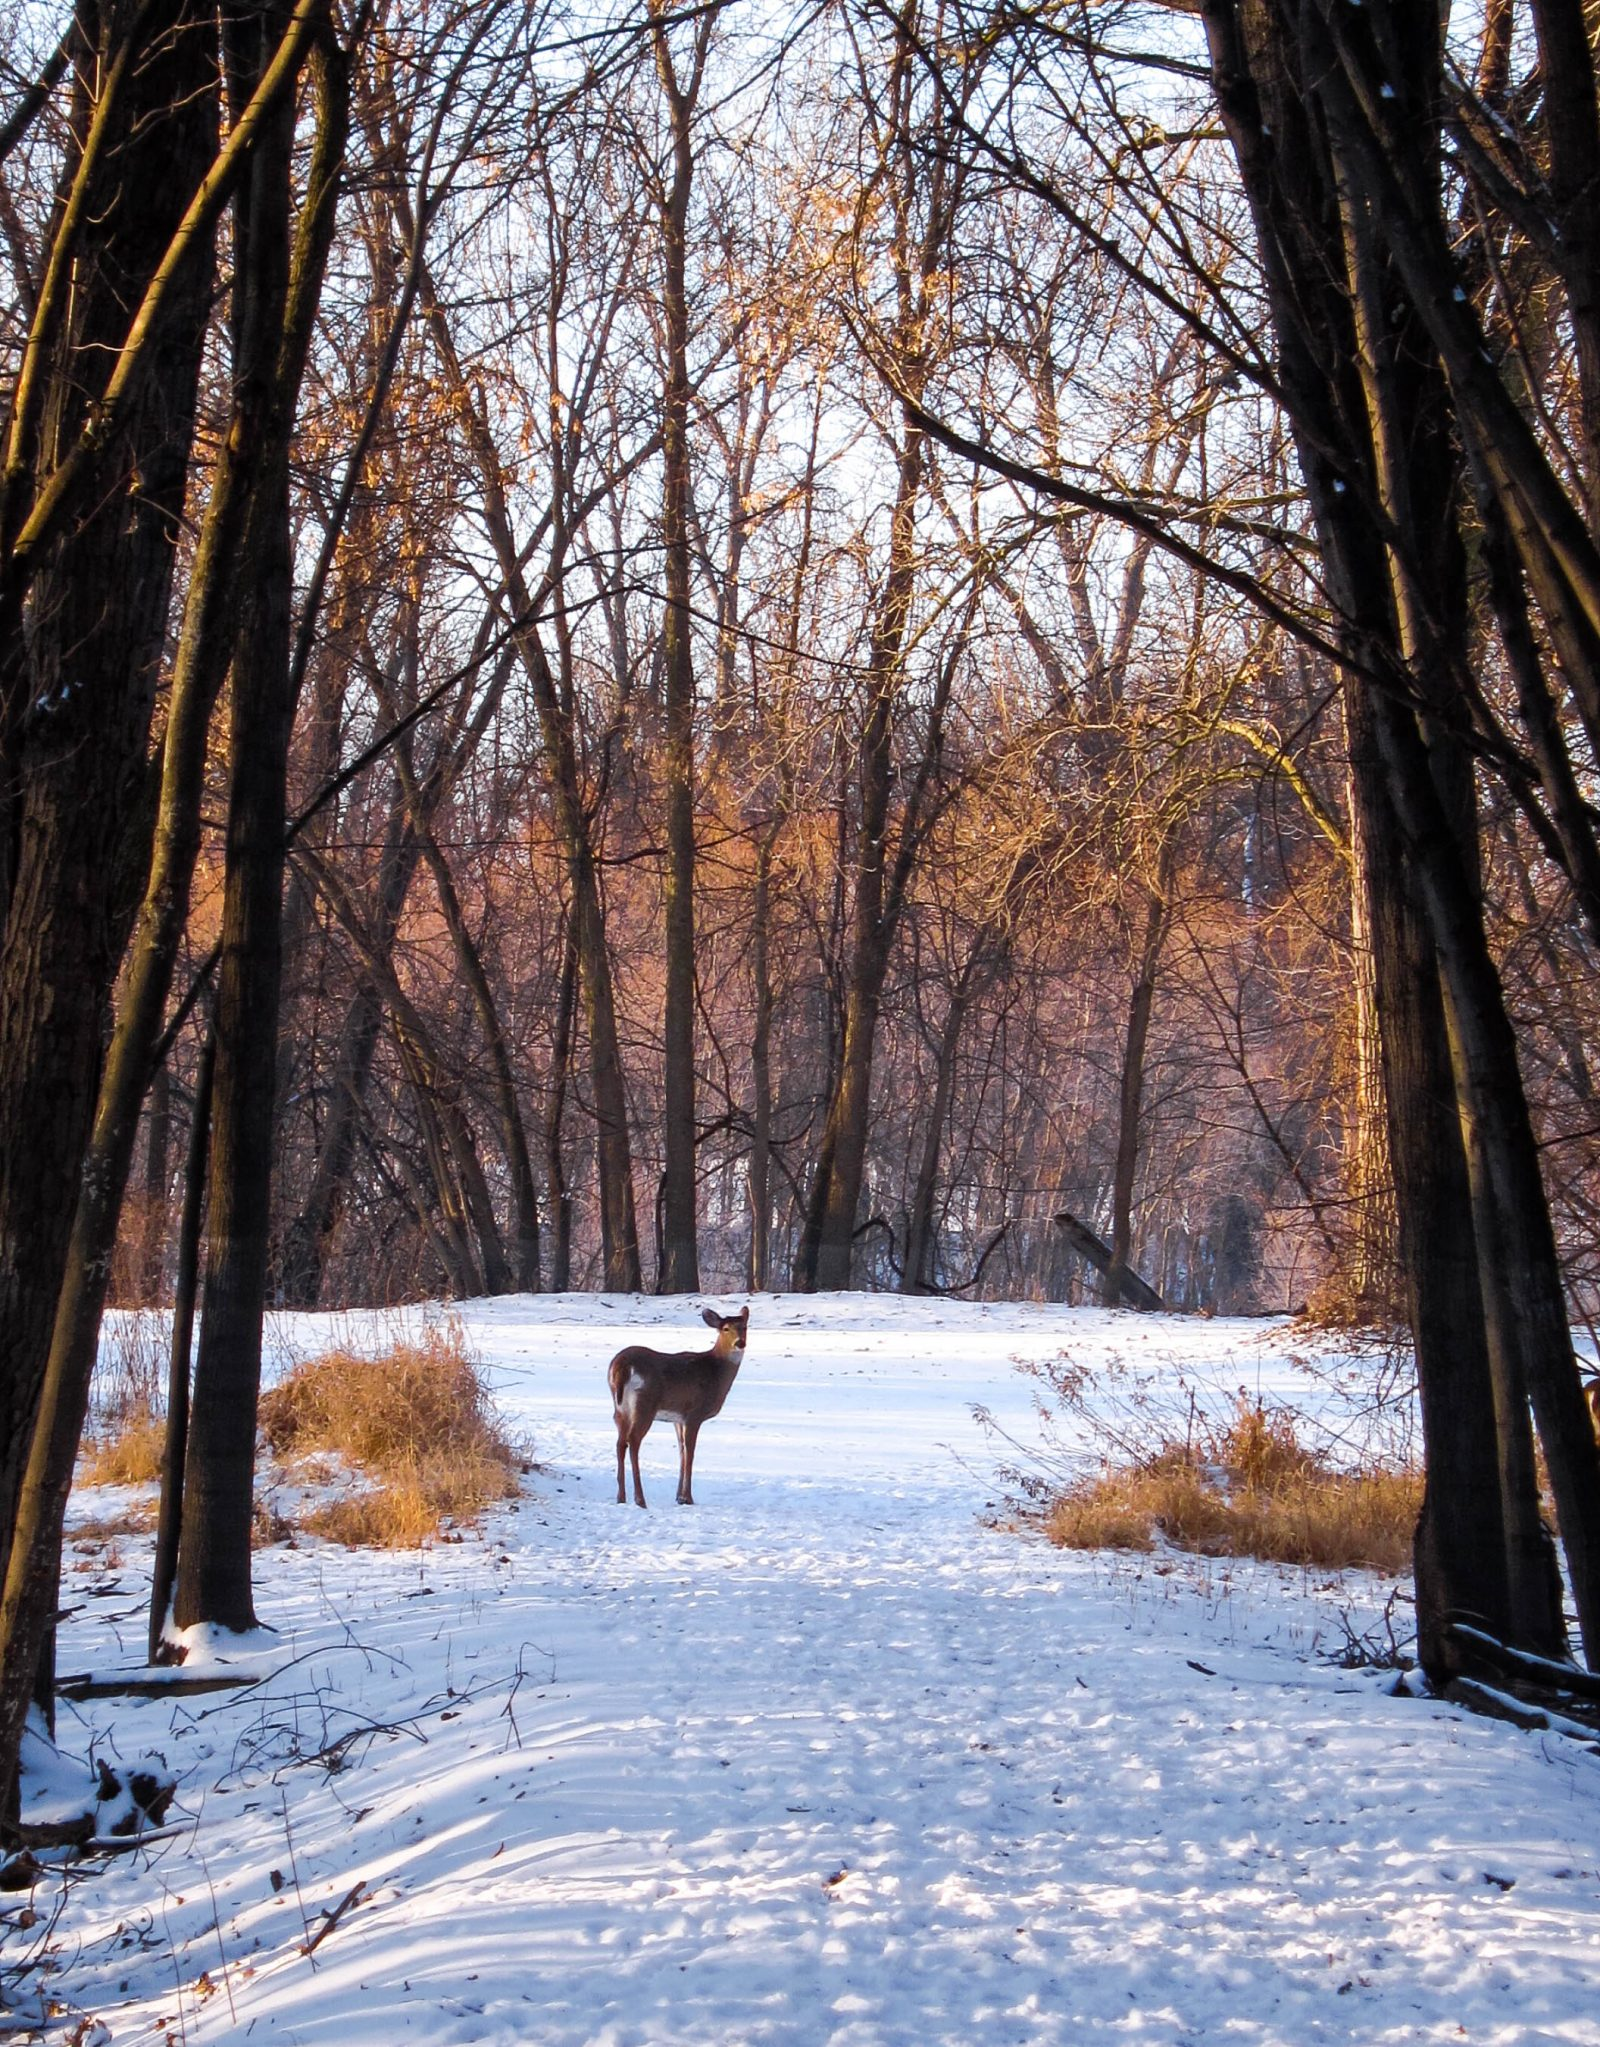 Deer in the Shadows